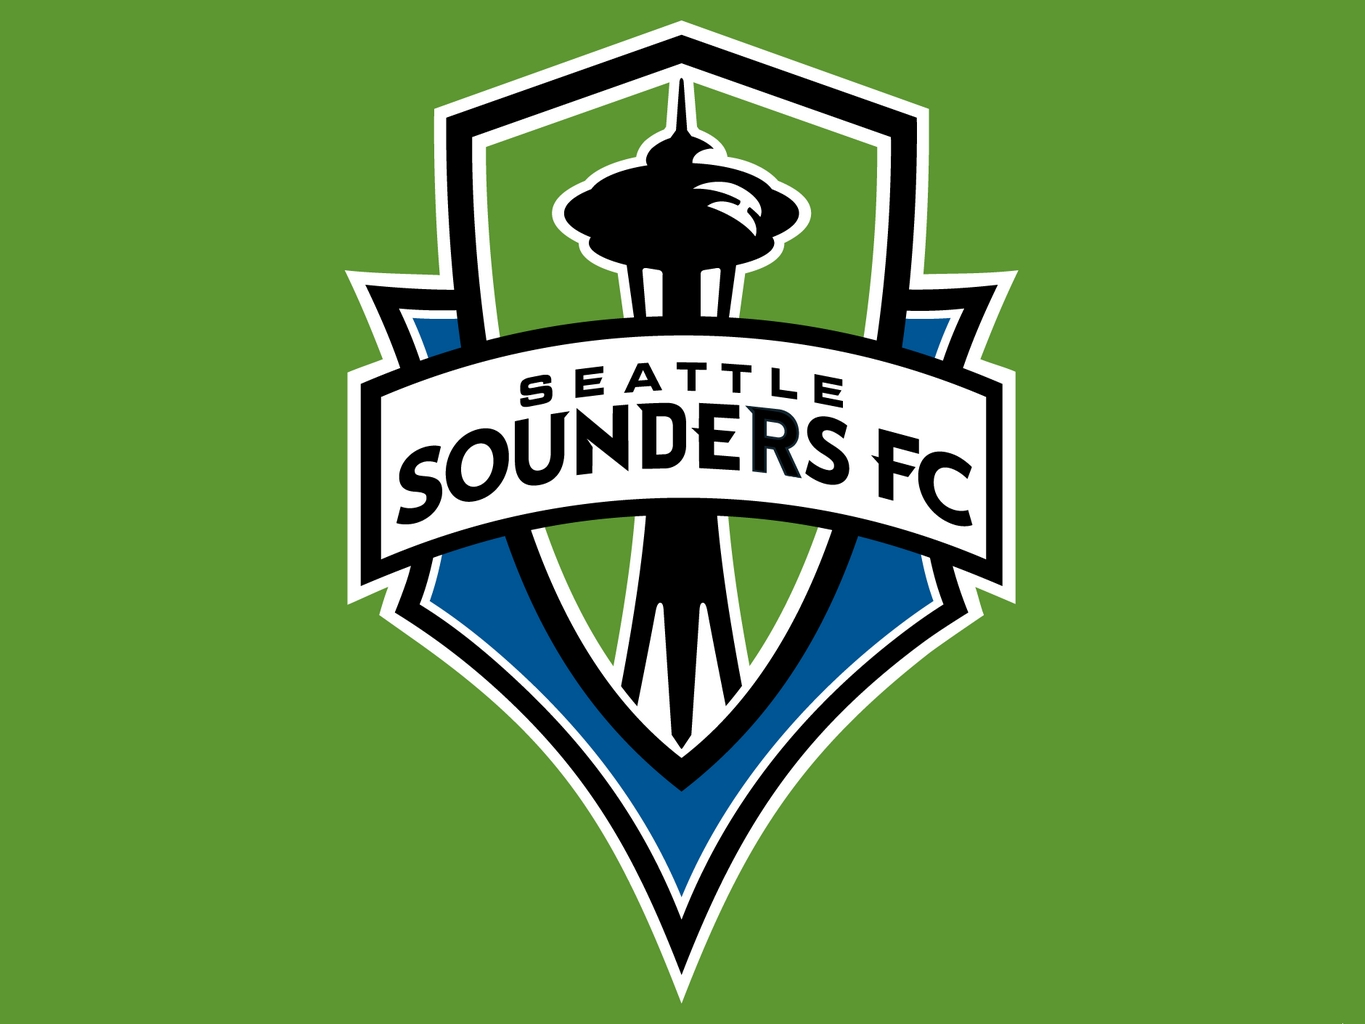 Seattle Sounders Football Club Logo Wallpaper